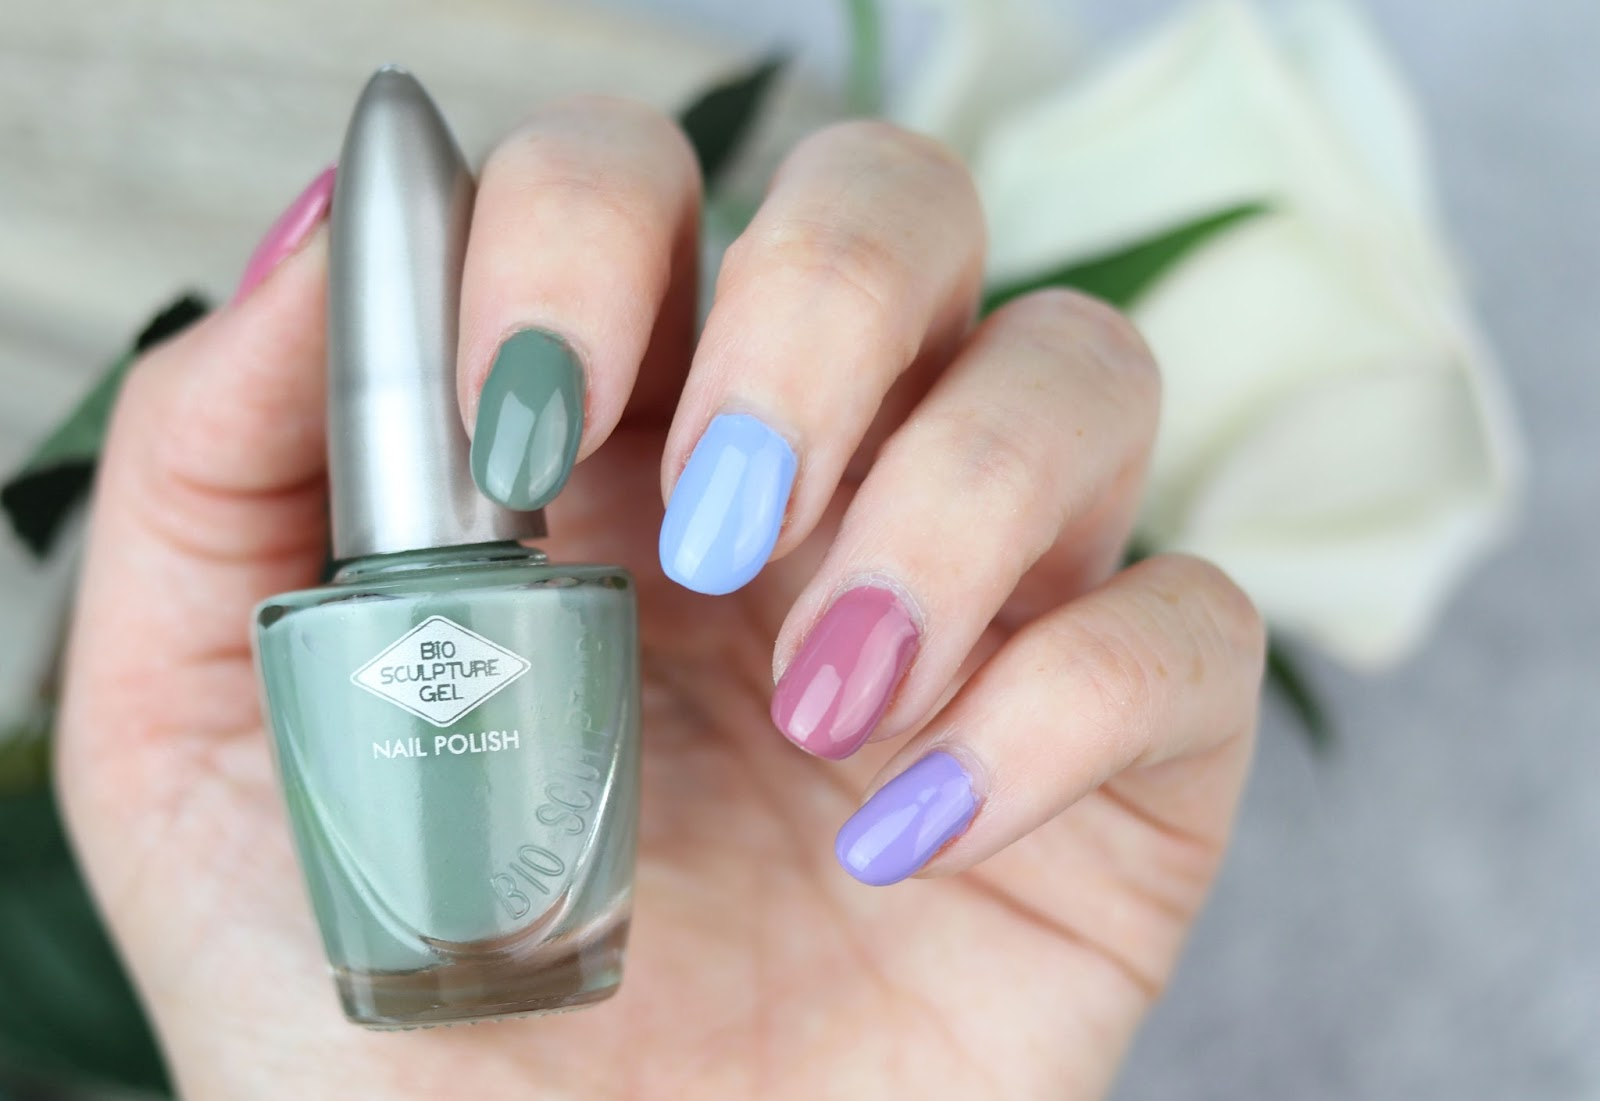 2018, aqua clouds, bio sculpture, effektlack, erfahrung, farbtrends, flieder, frühling, himmelblau, kollektion, marsala, nägel lackieren, nagellack, nailpolish, review, sommer, spring, summer, the dreamers, waldgrün,